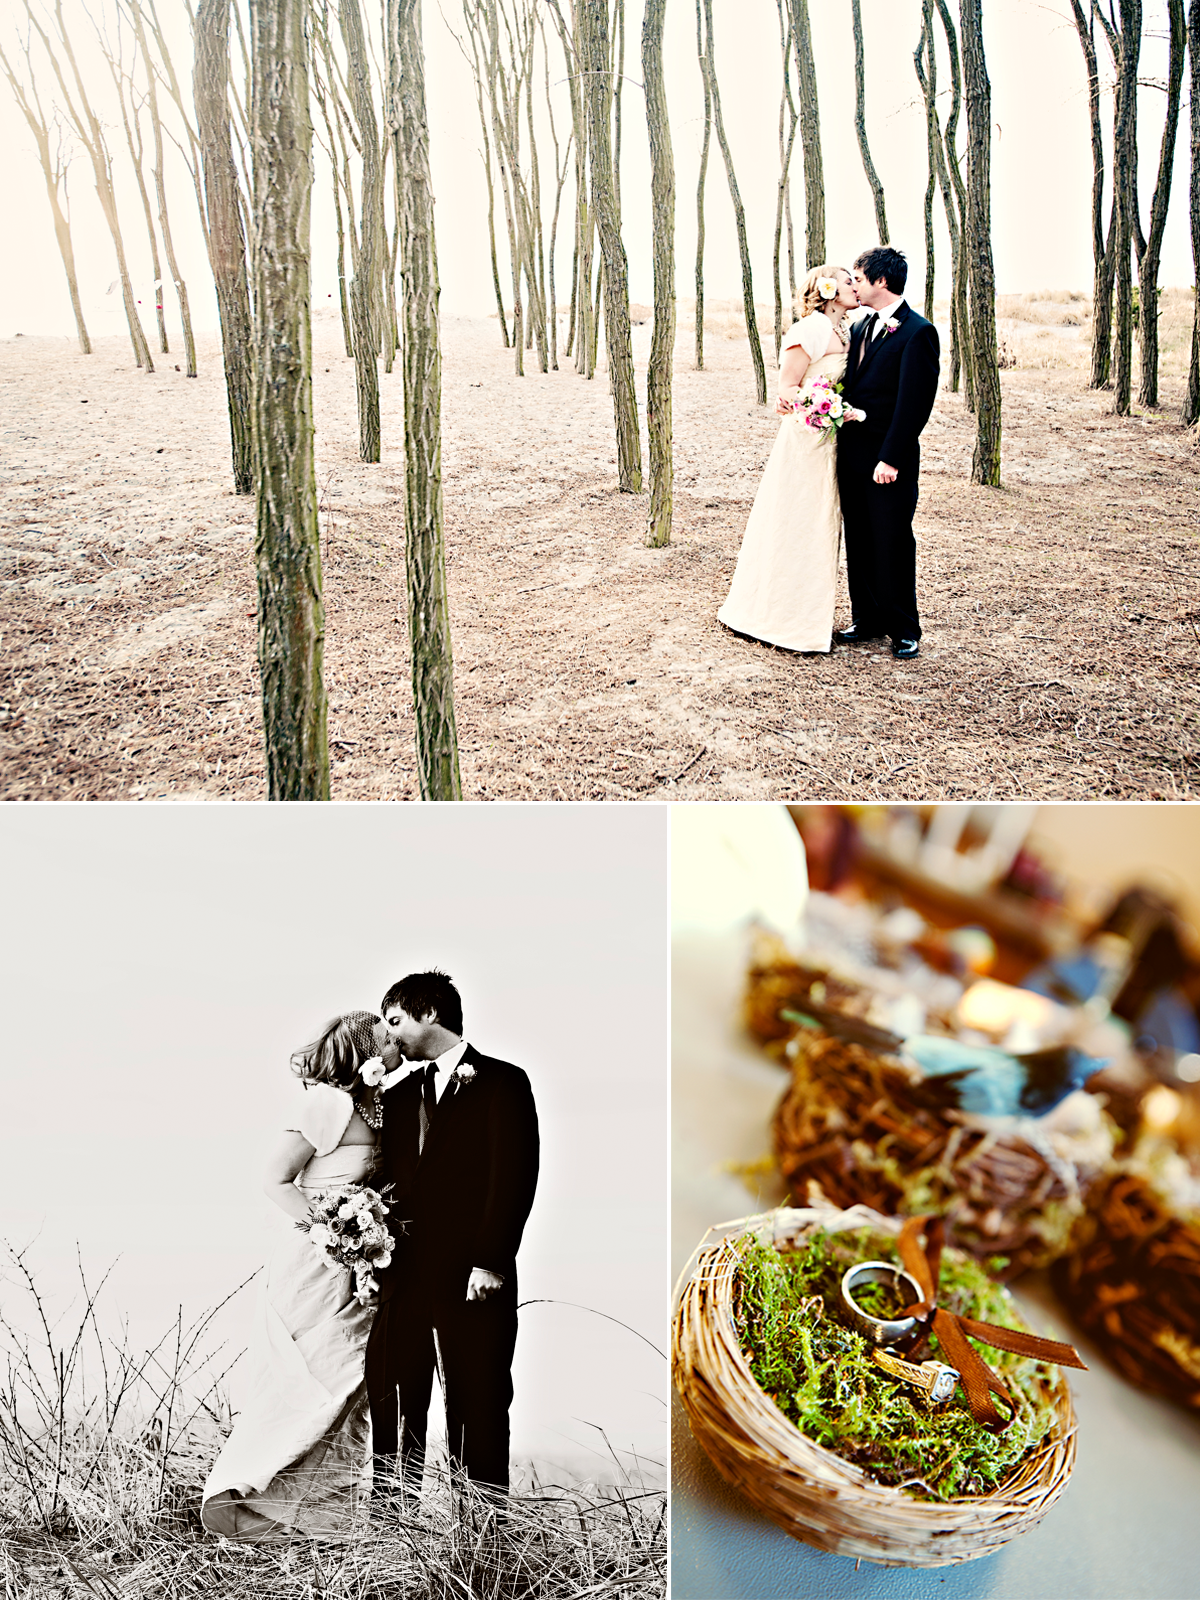 Outdoor-wedding-seattle-winter-wedding-ideas.original